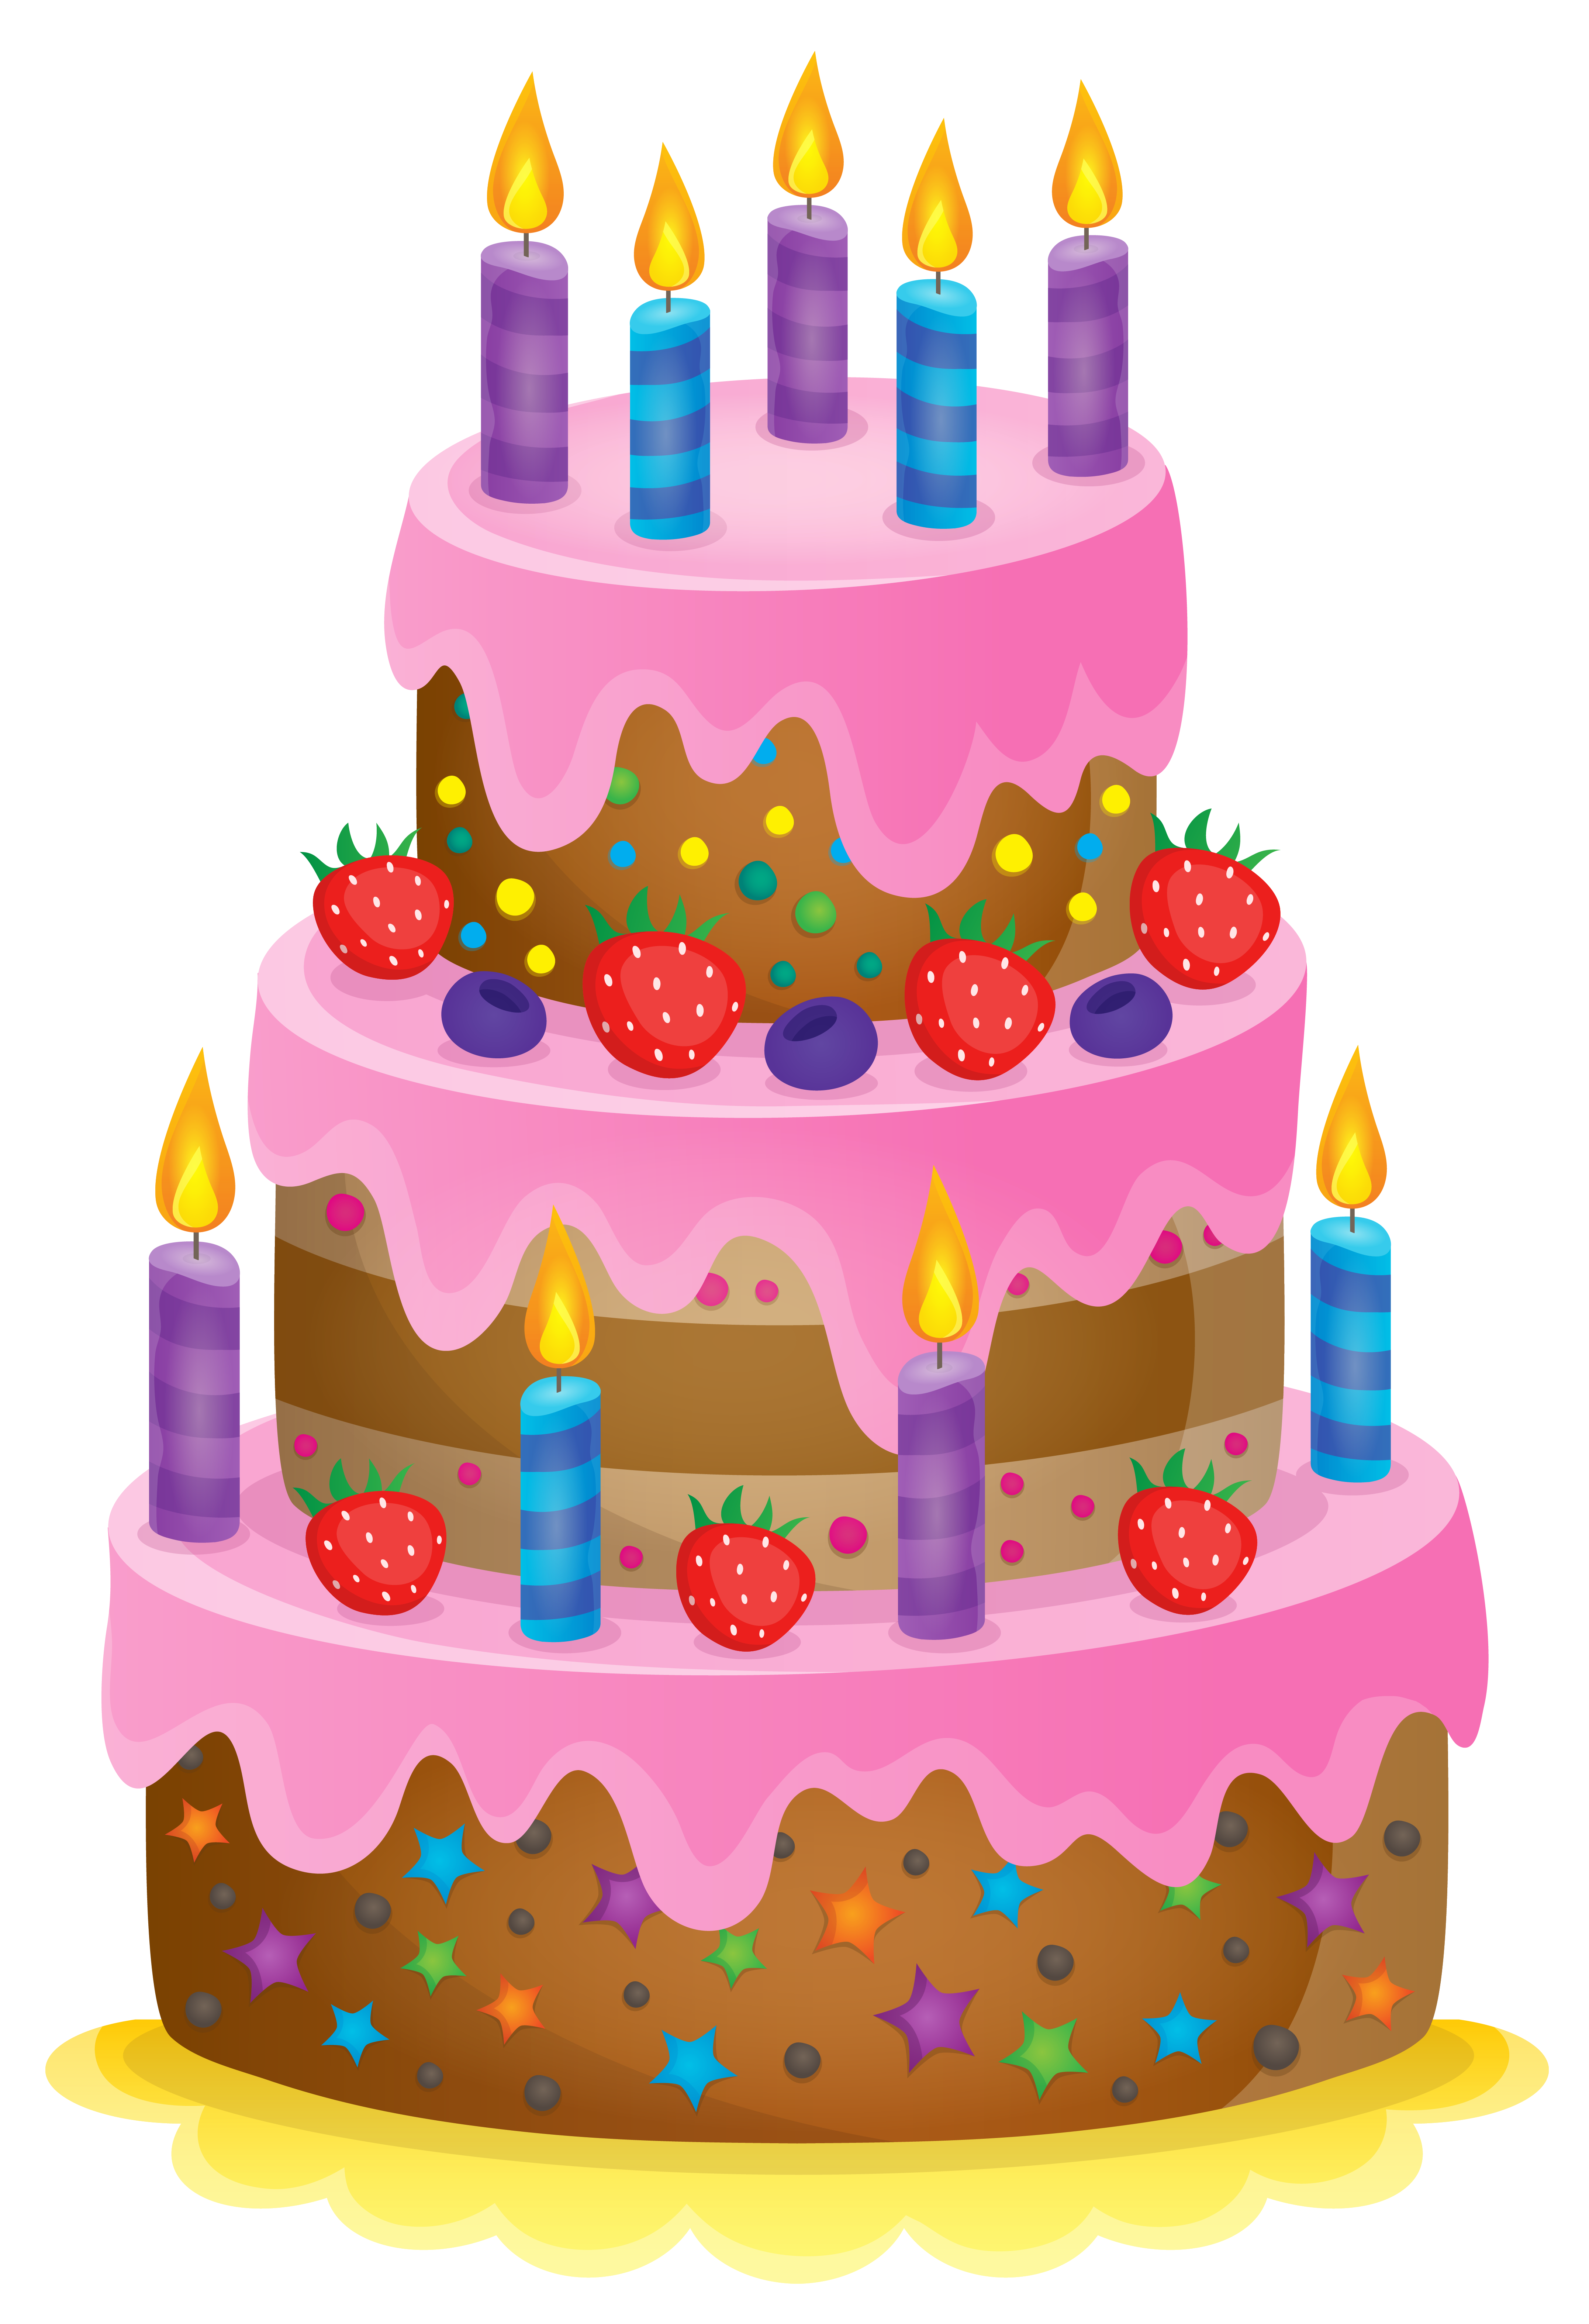 Cute Cake PNG Clipart Image.